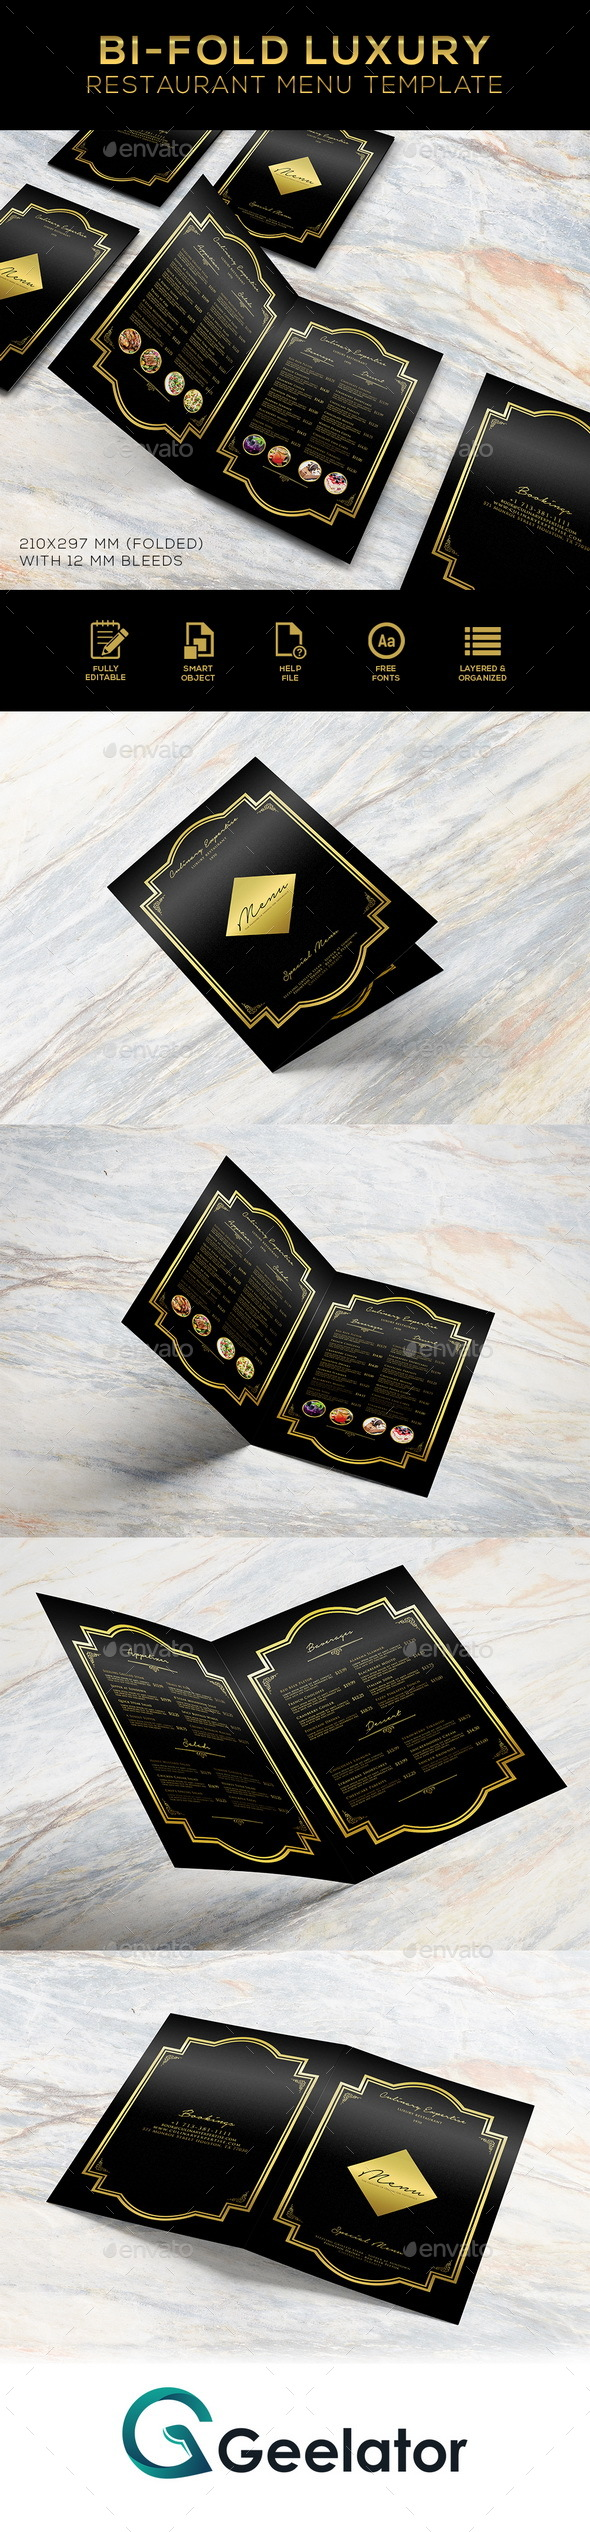 Bi-Fold Luxury Restaurant Menu Template - Food Menus Print Templates